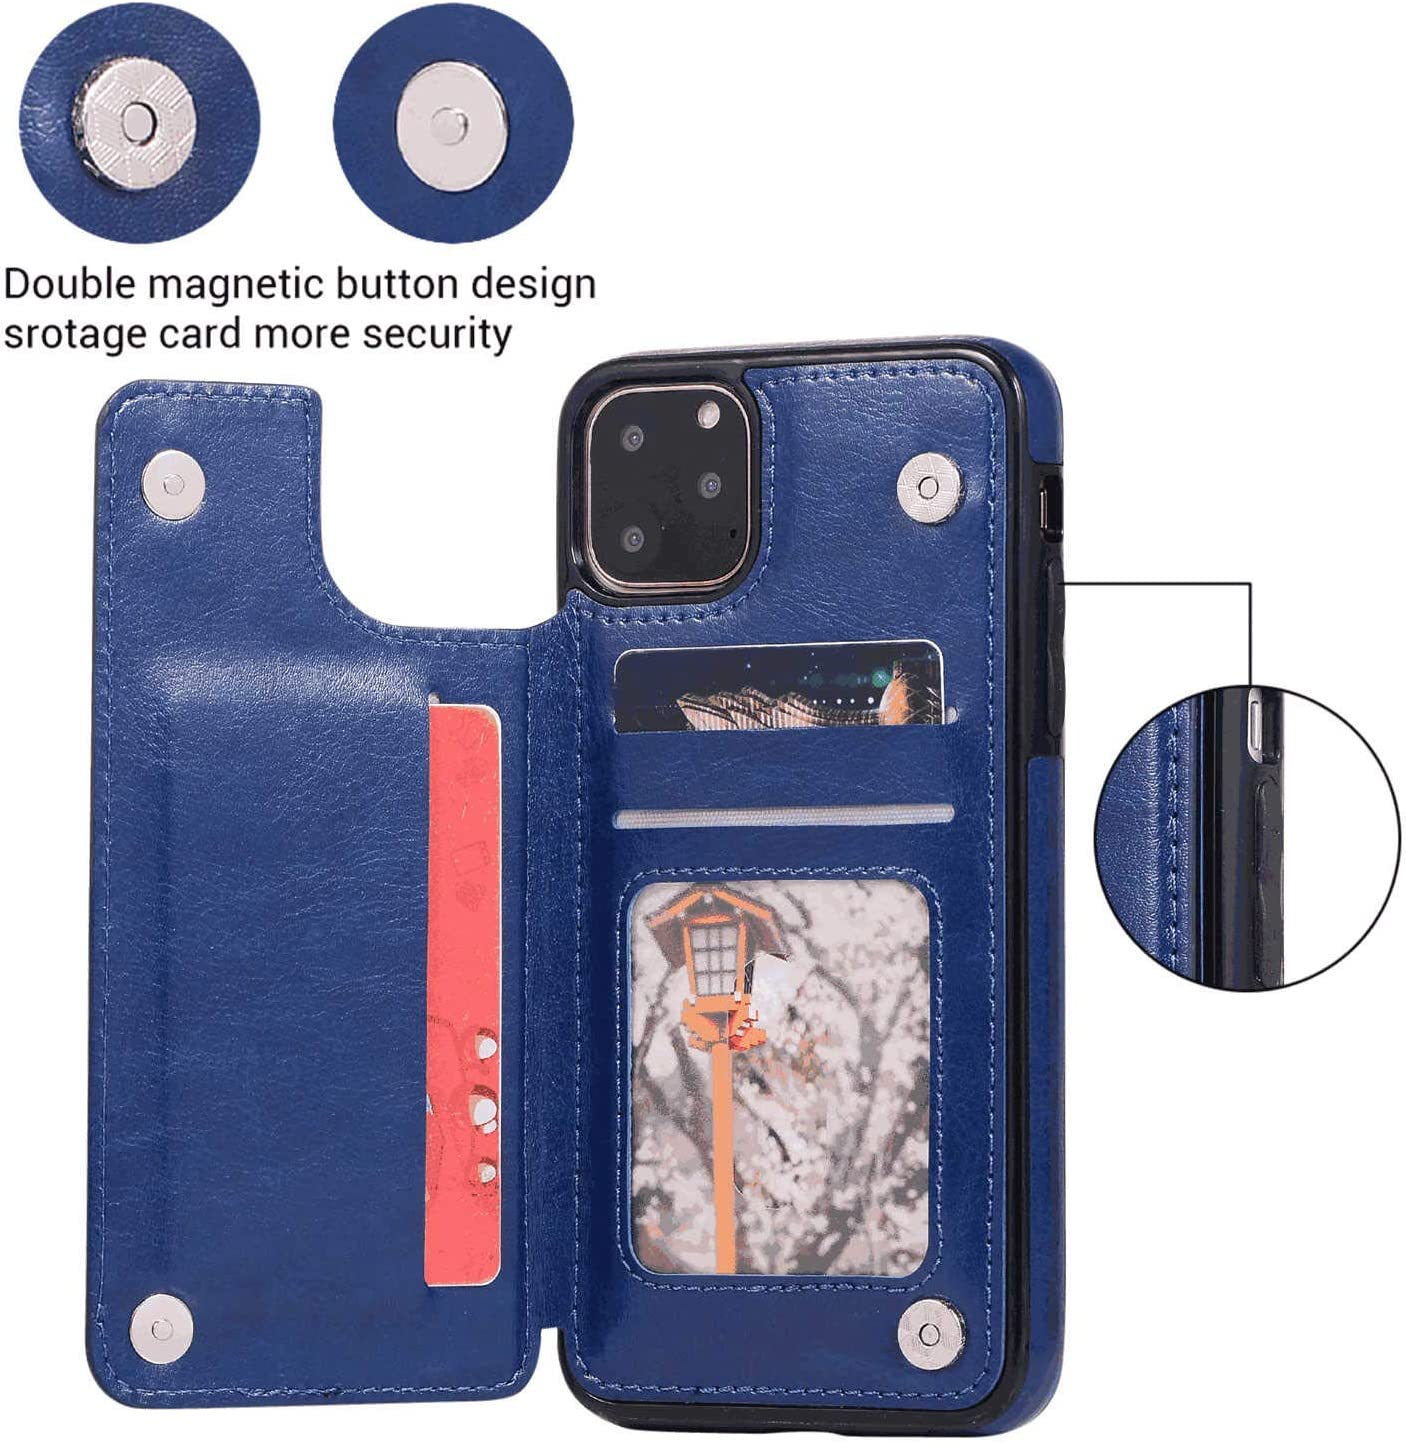 iPhone 11 Pro Max Flip Case Cover for Leather Card Holders Extra-ShockProof Business cell phone case Kickstand Flip Cover